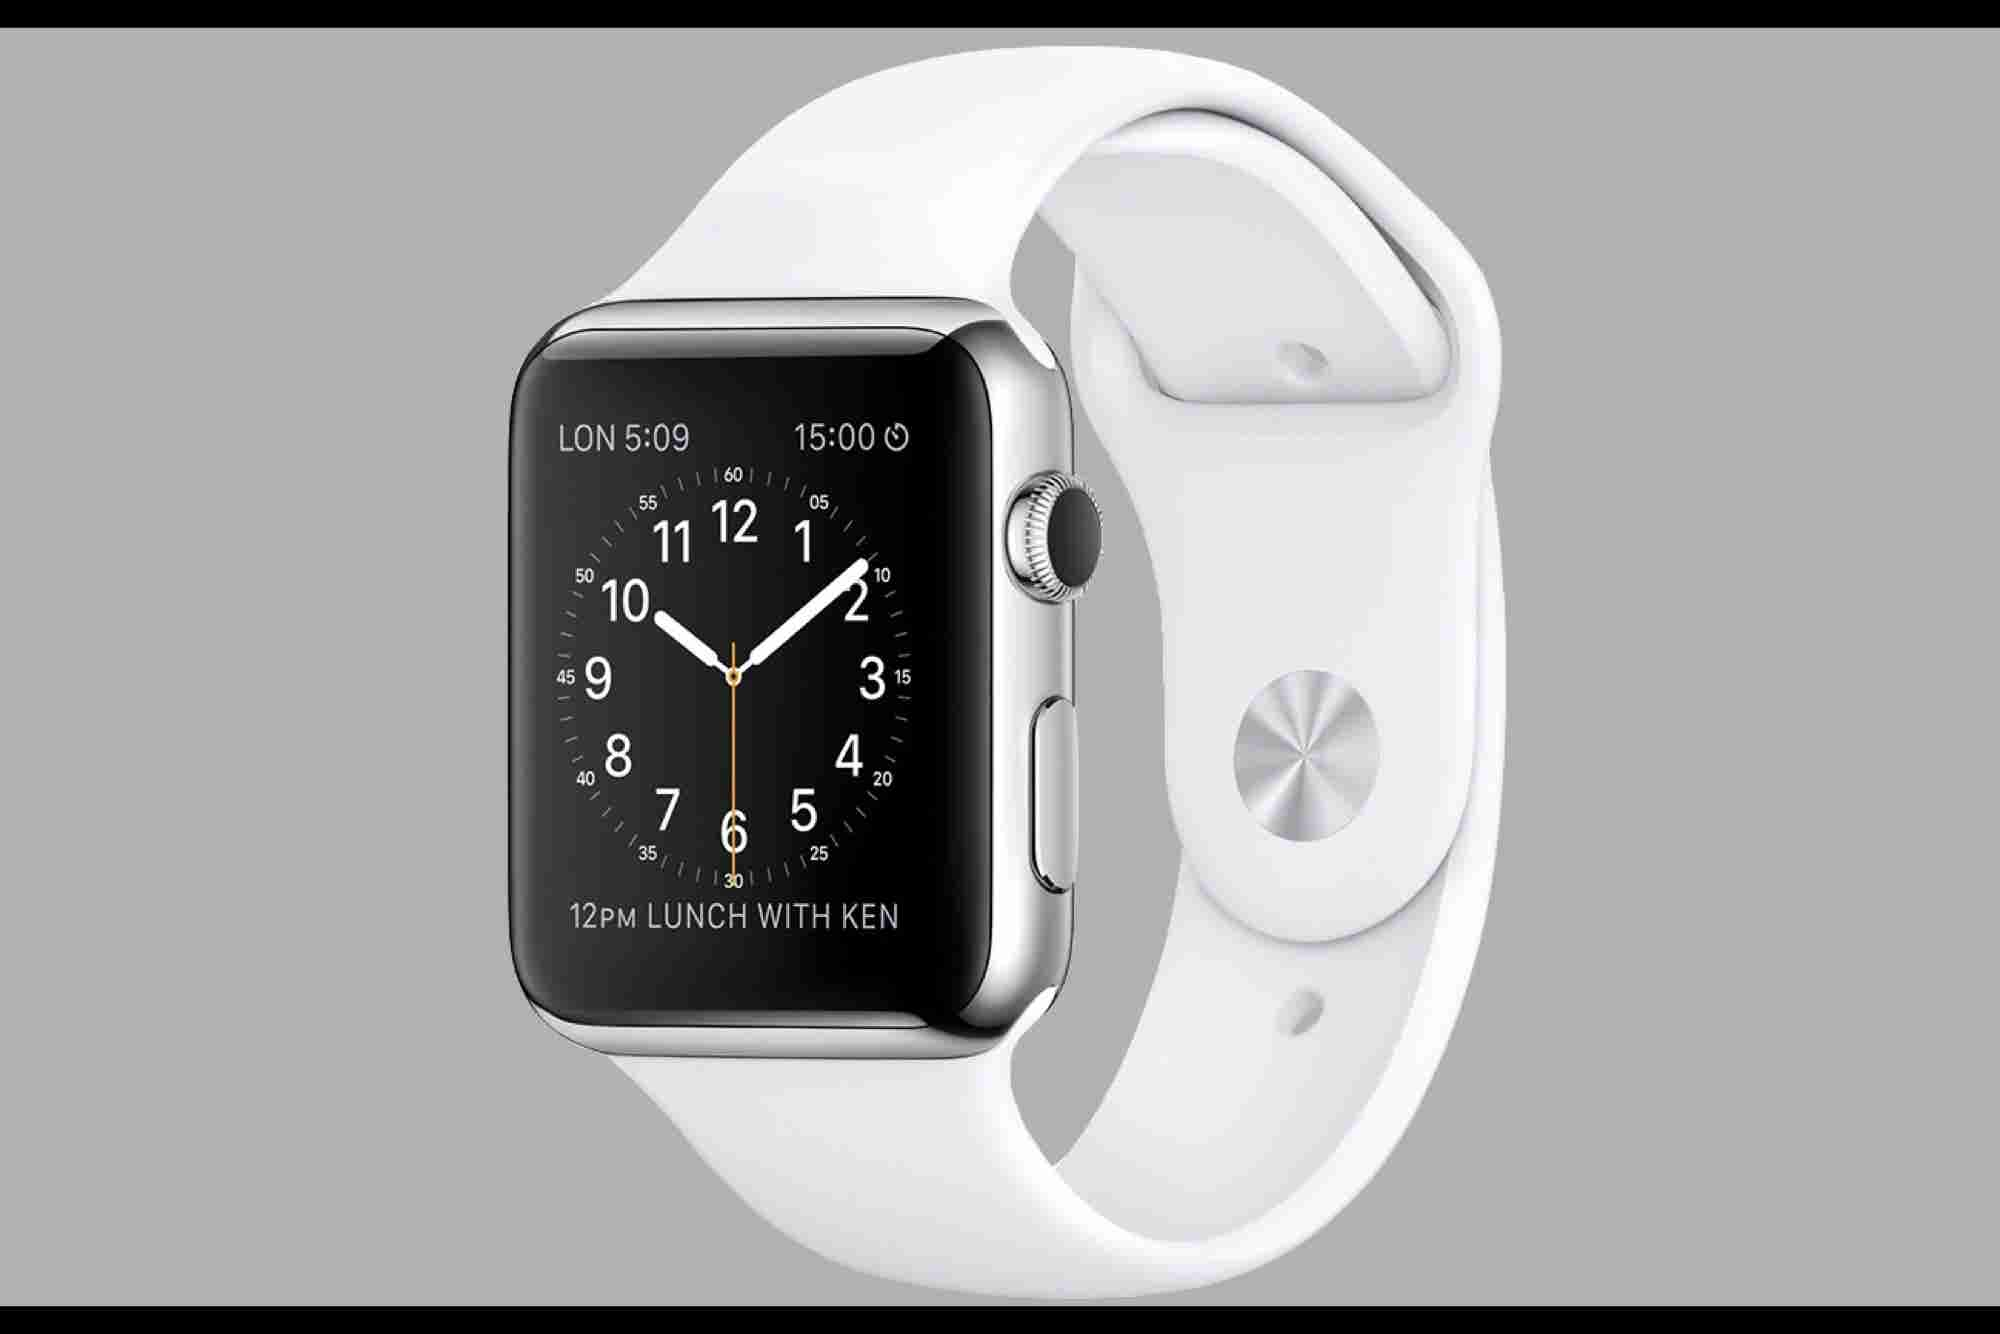 Apple Watch Hits Stores: Weekly News Roundup